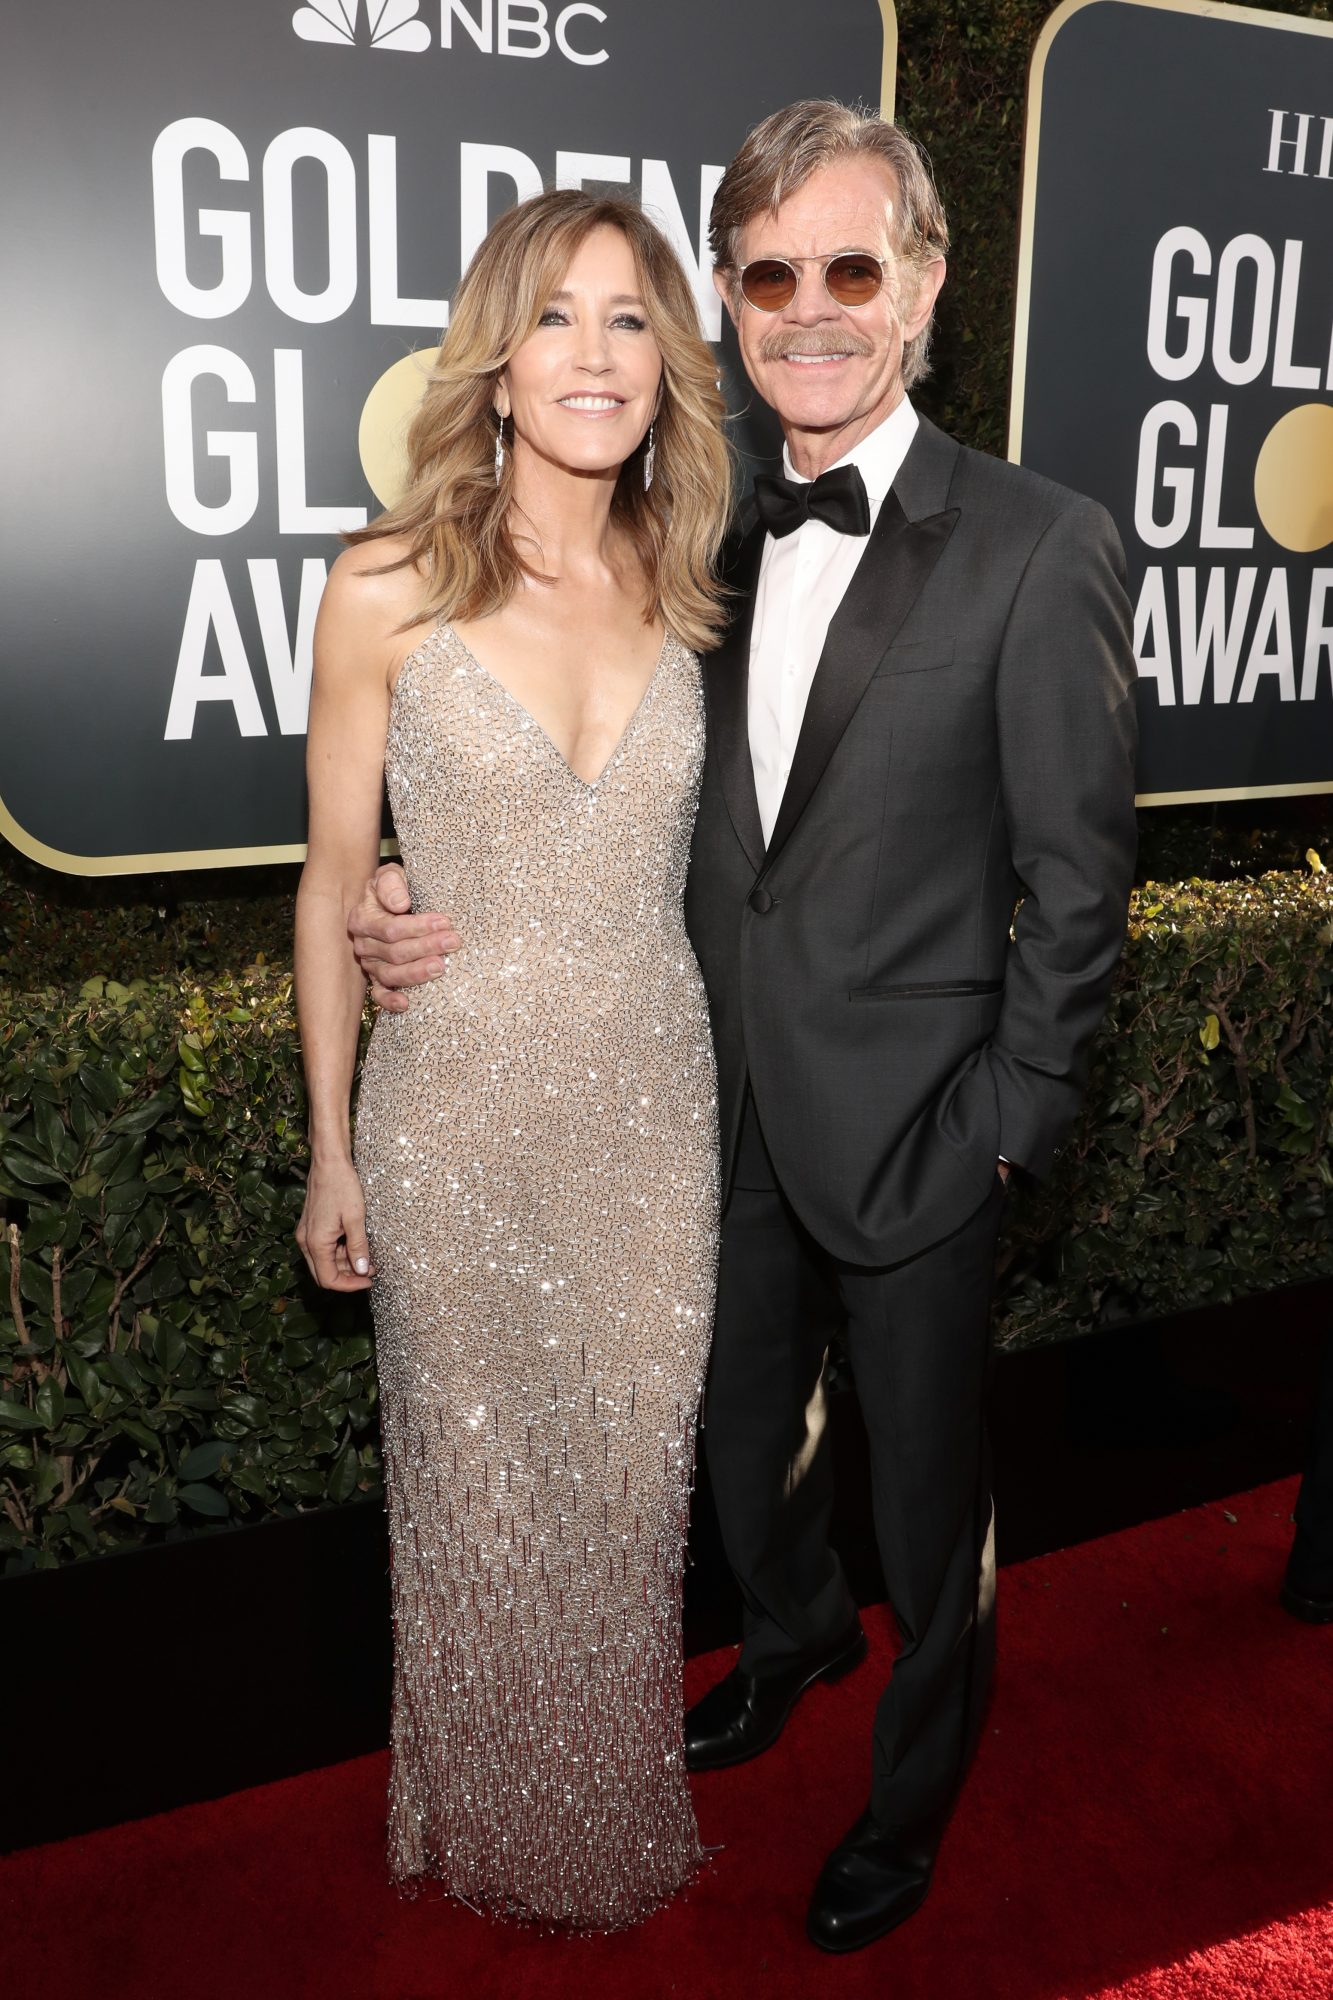 felicity huffman and william h macy 2019 golden globes